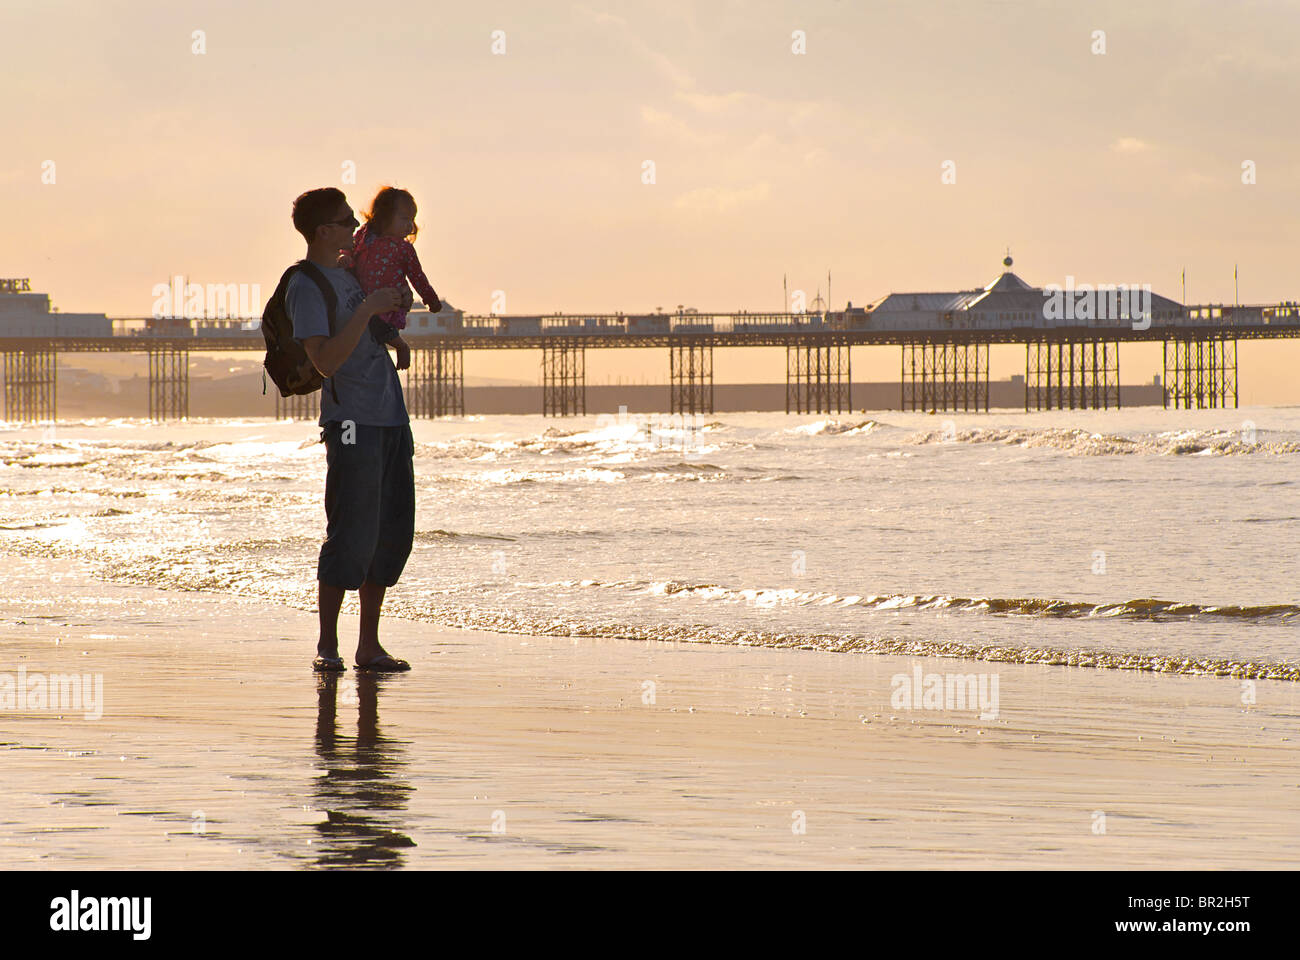 Father and young daughter on Brighton beach at low tide and sunrise. MODEL RELEASED. Brighton, East Sussex, England - Stock Image